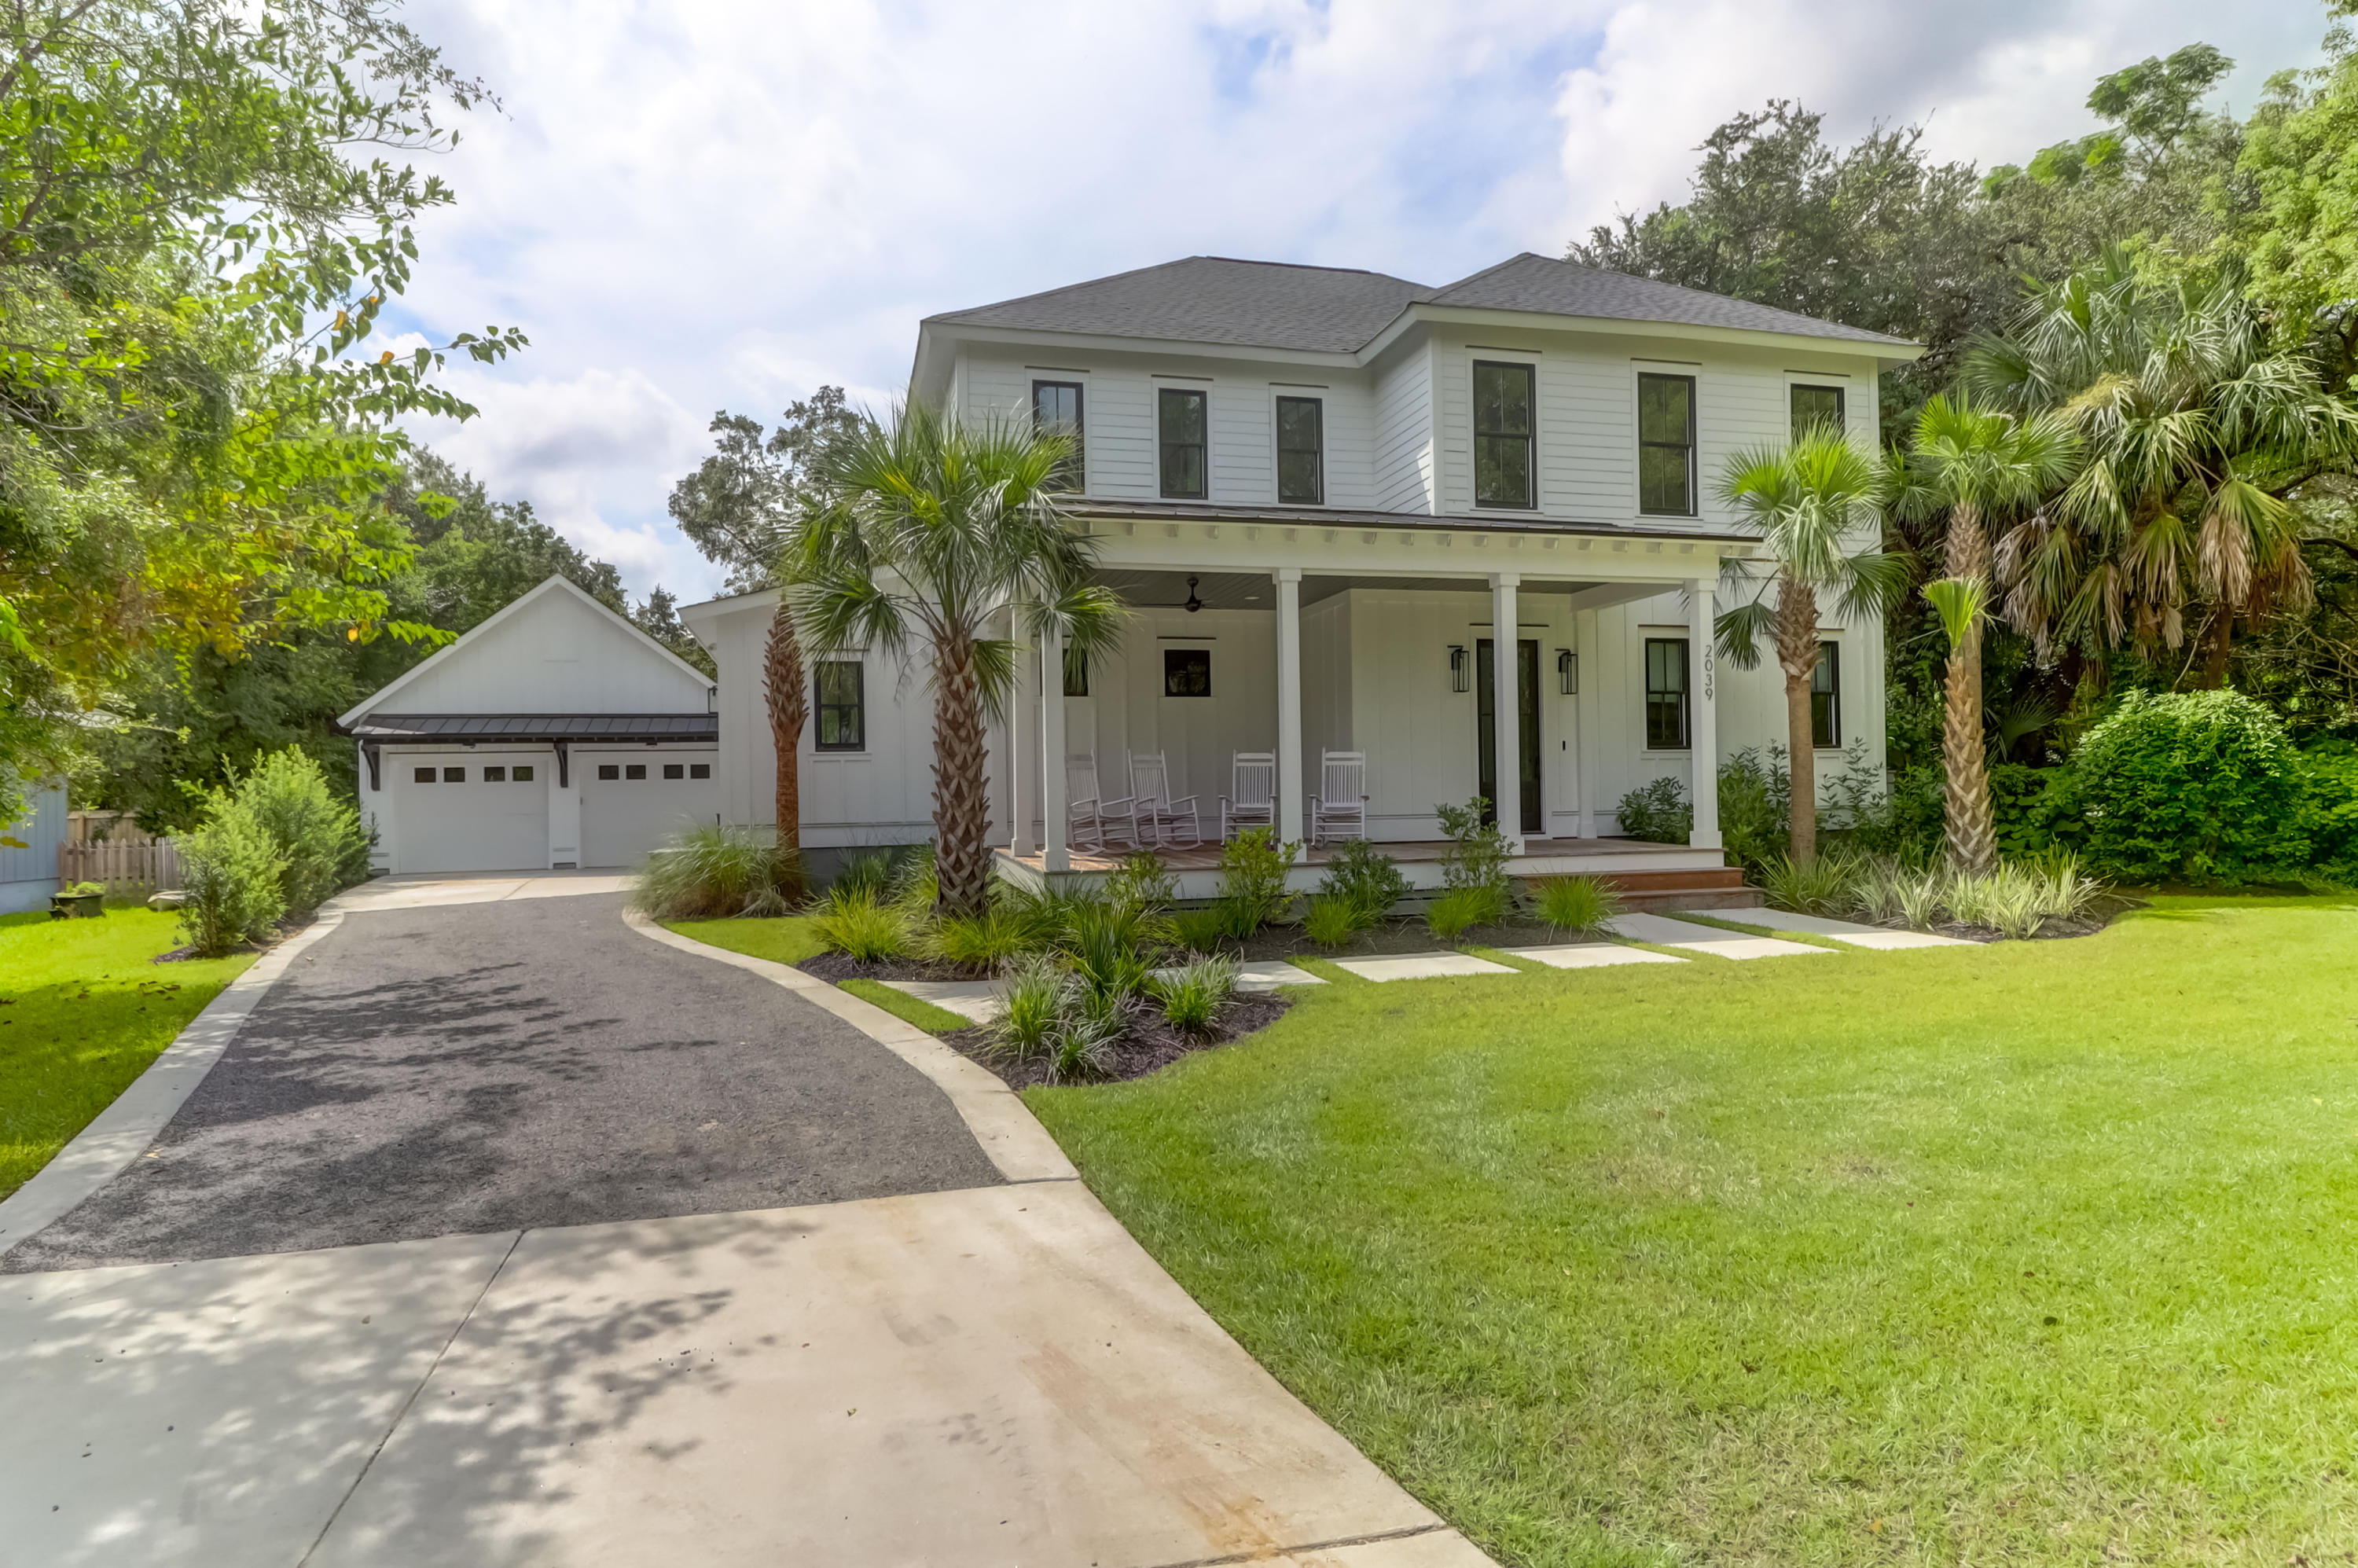 Riverland Terrace Homes For Sale - 2039 Parkway Dr, Charleston, SC - 16